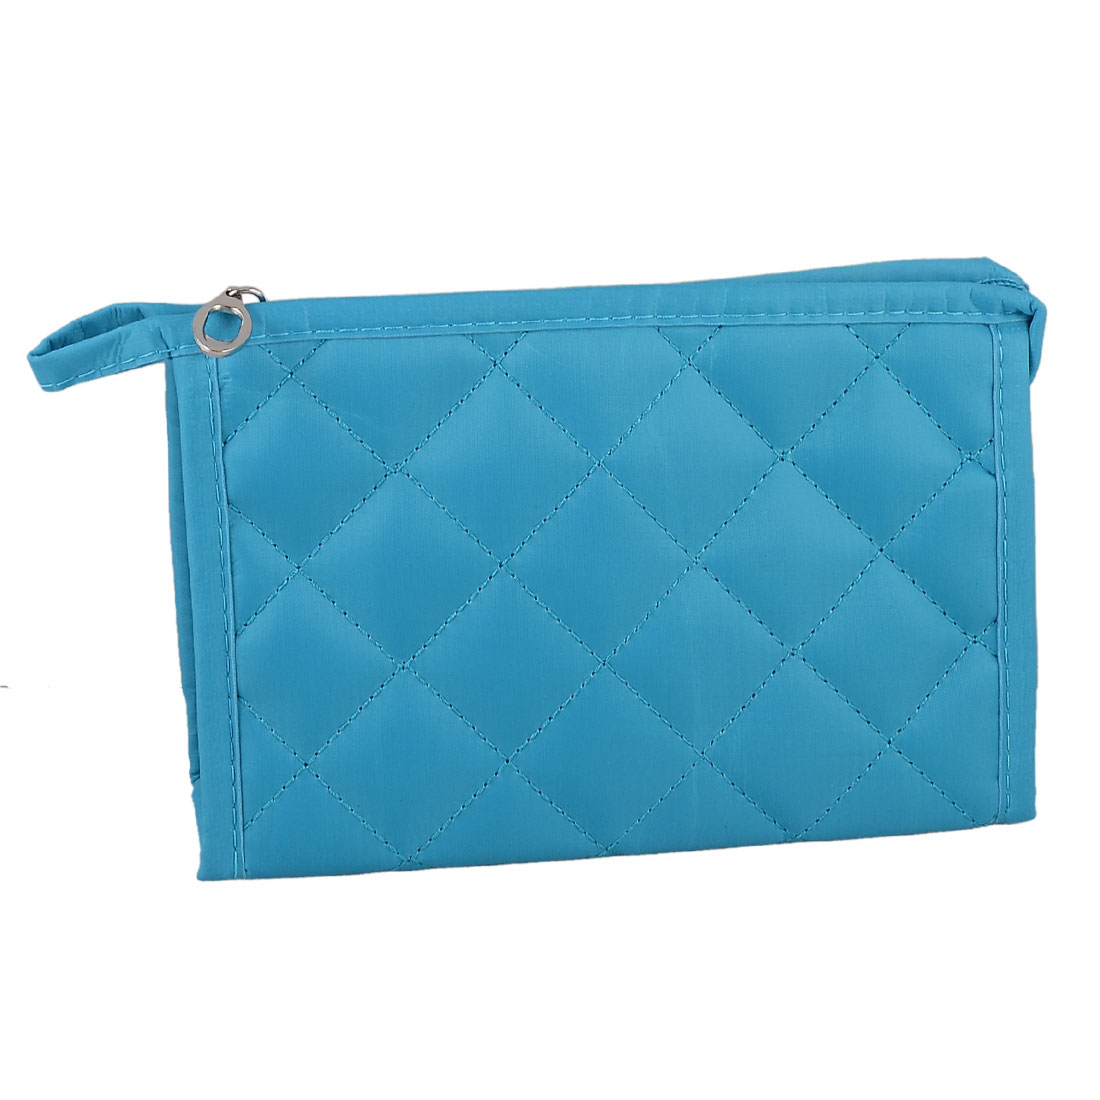 Cosmetic Makeup Zipper Closure Case Bag Rectangle Pouch Cyan Blue for Ladies